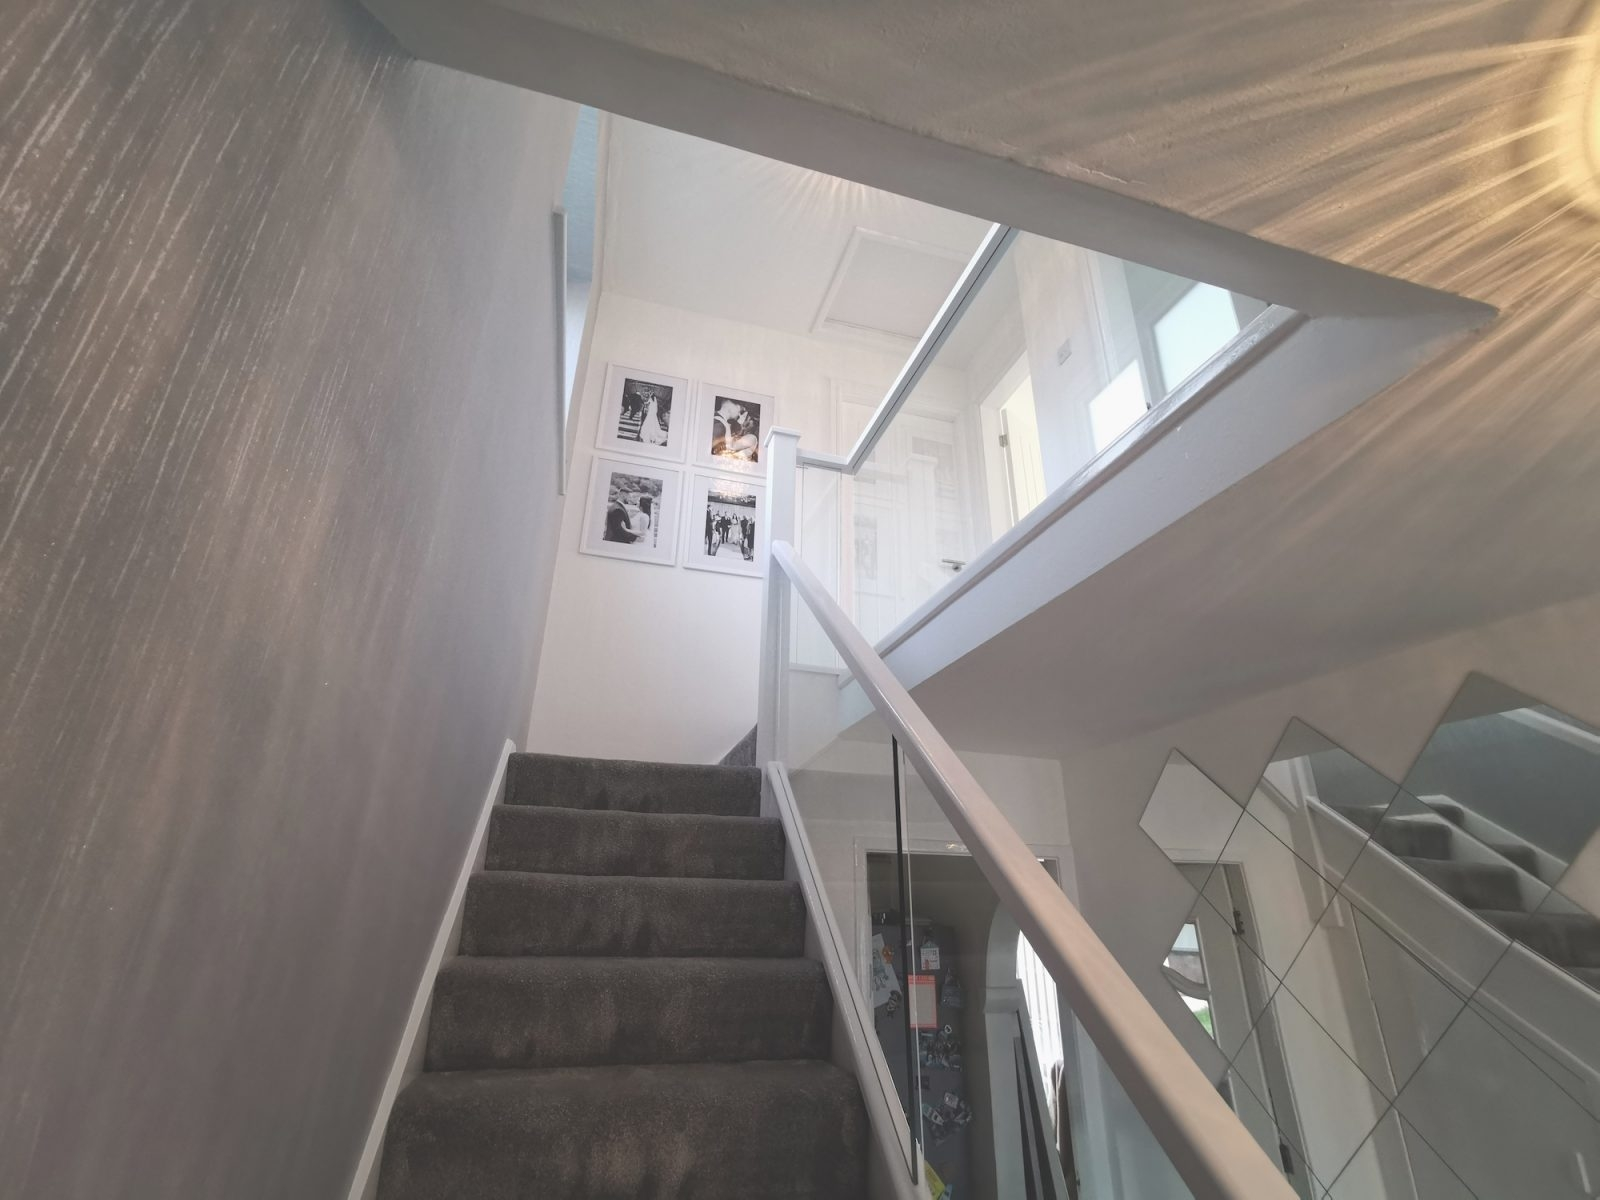 White Staircase Embedded Glass Edwards Hampson   White Wood And Glass Staircase   Design   70'S   Thick Solid Oak Stair   Bannister   Indoor Glass